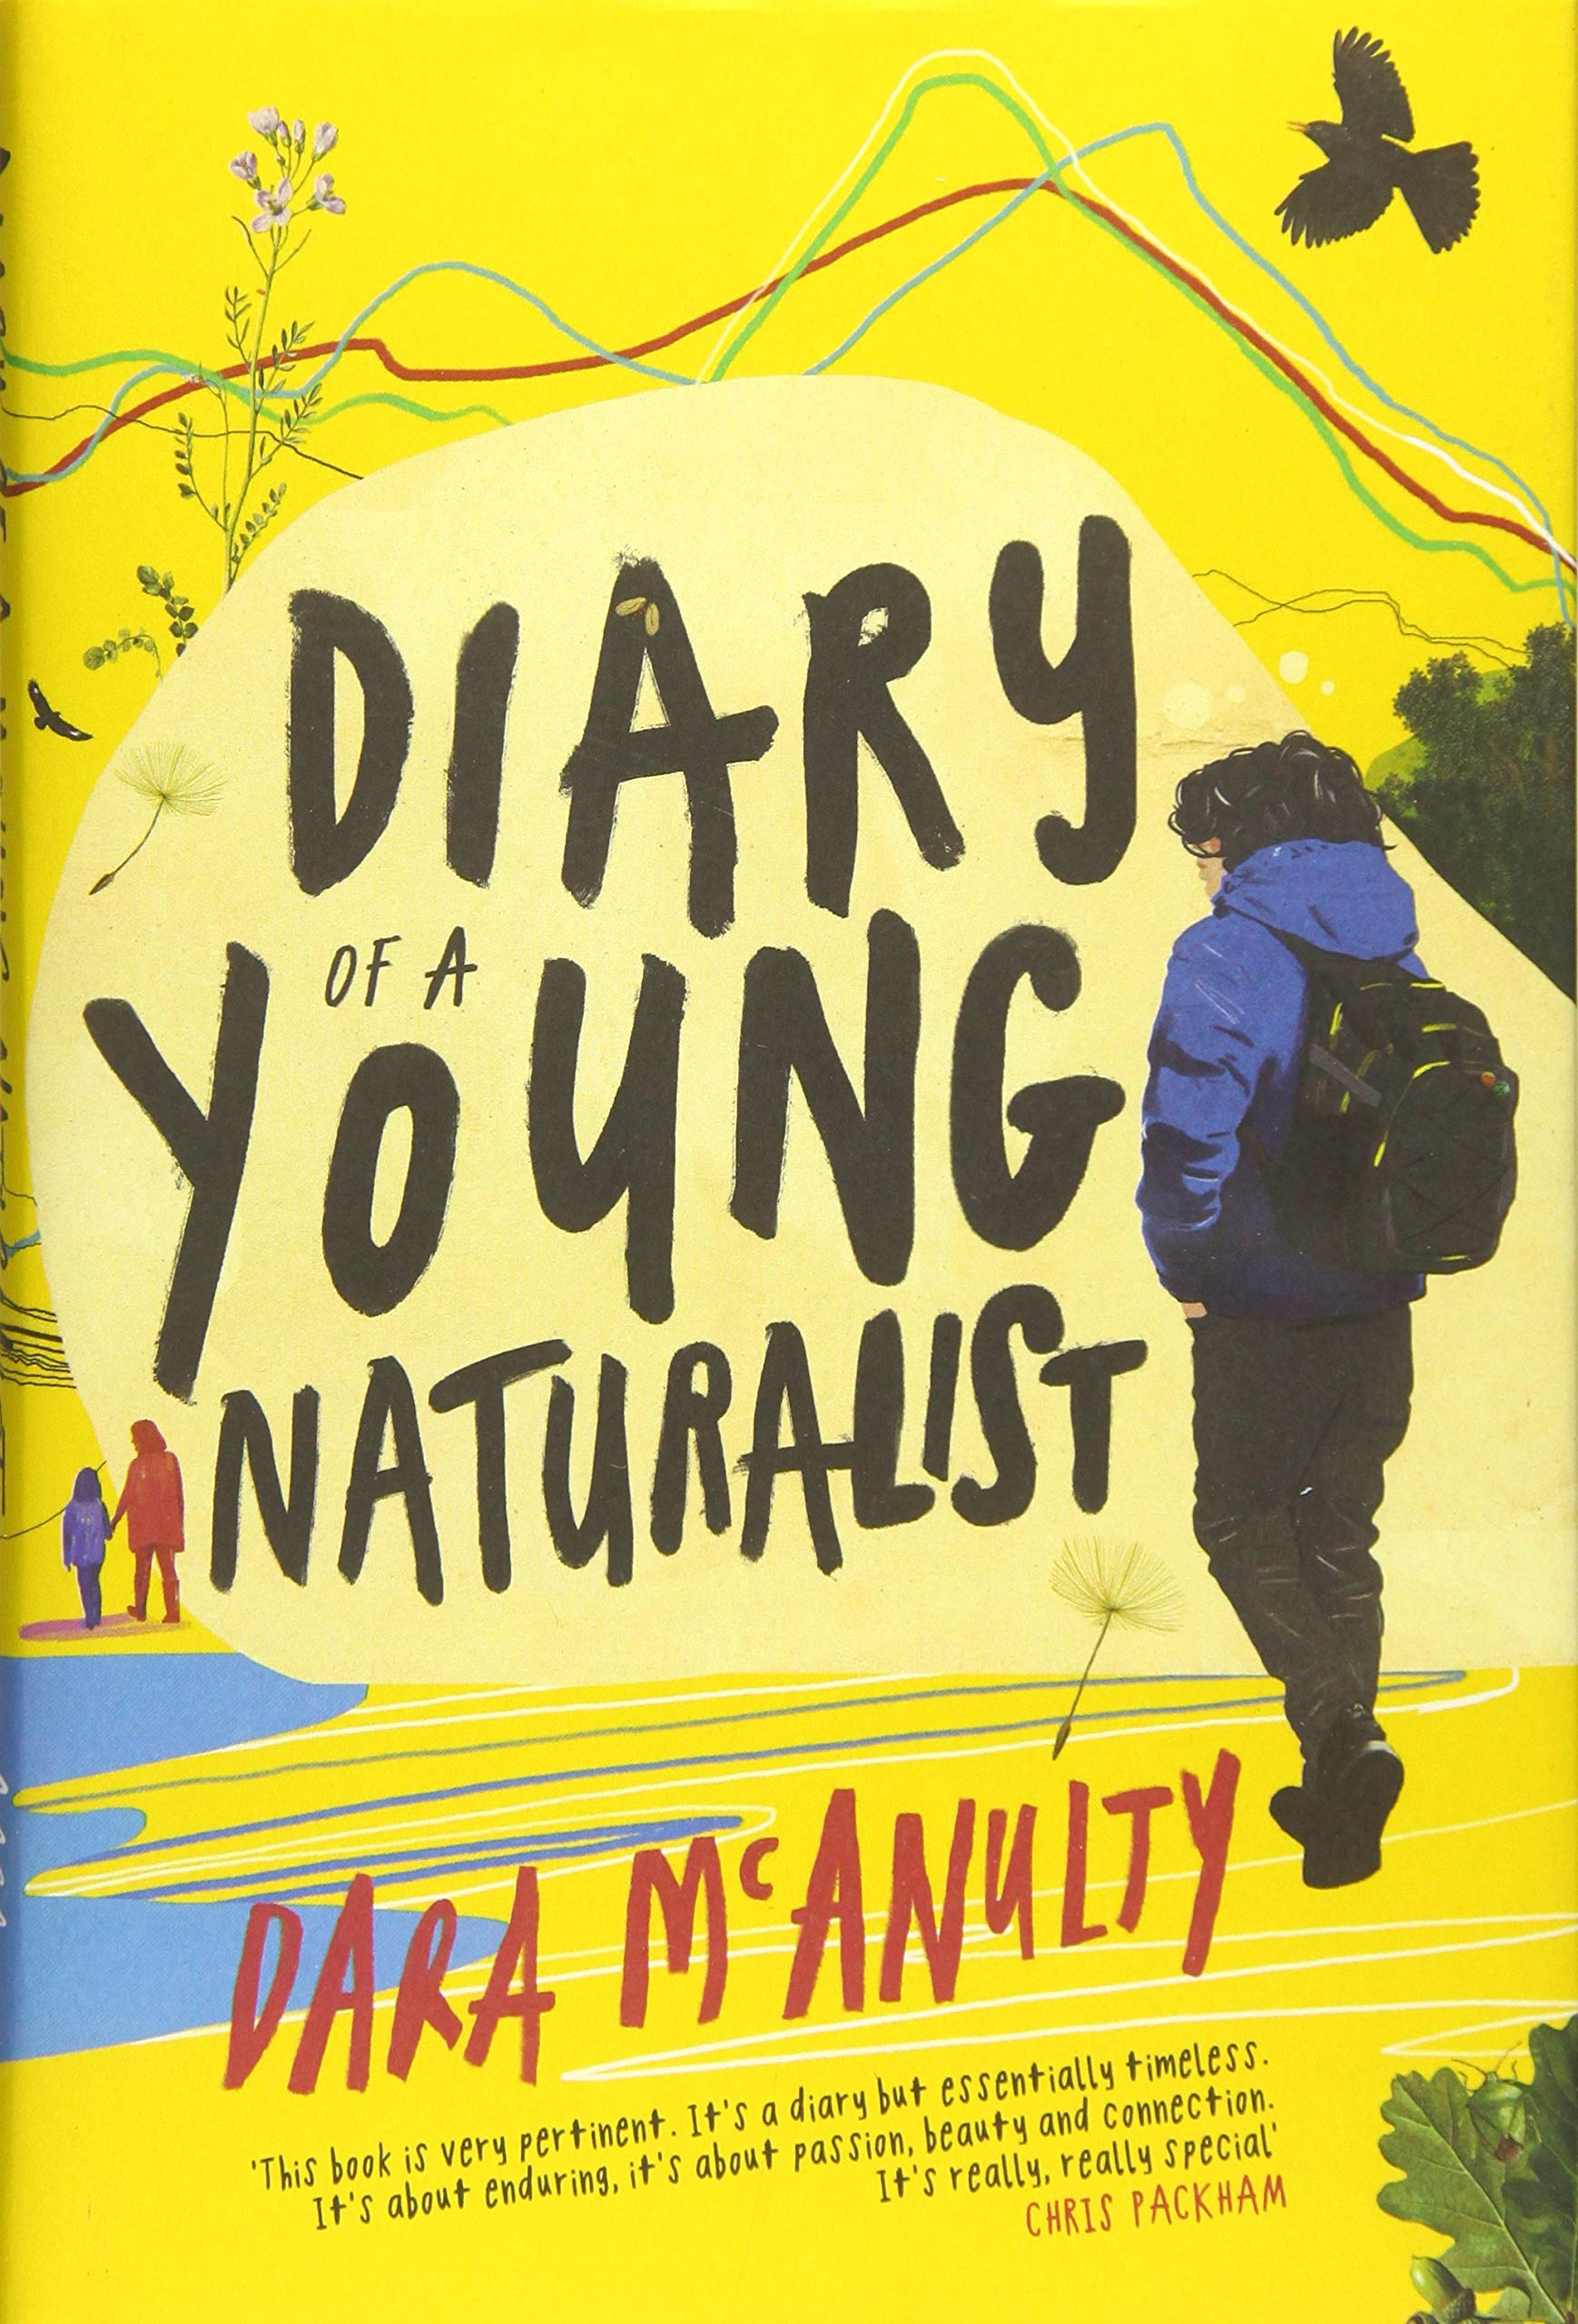 Dara McNulty, Diary of a Young Naturalist